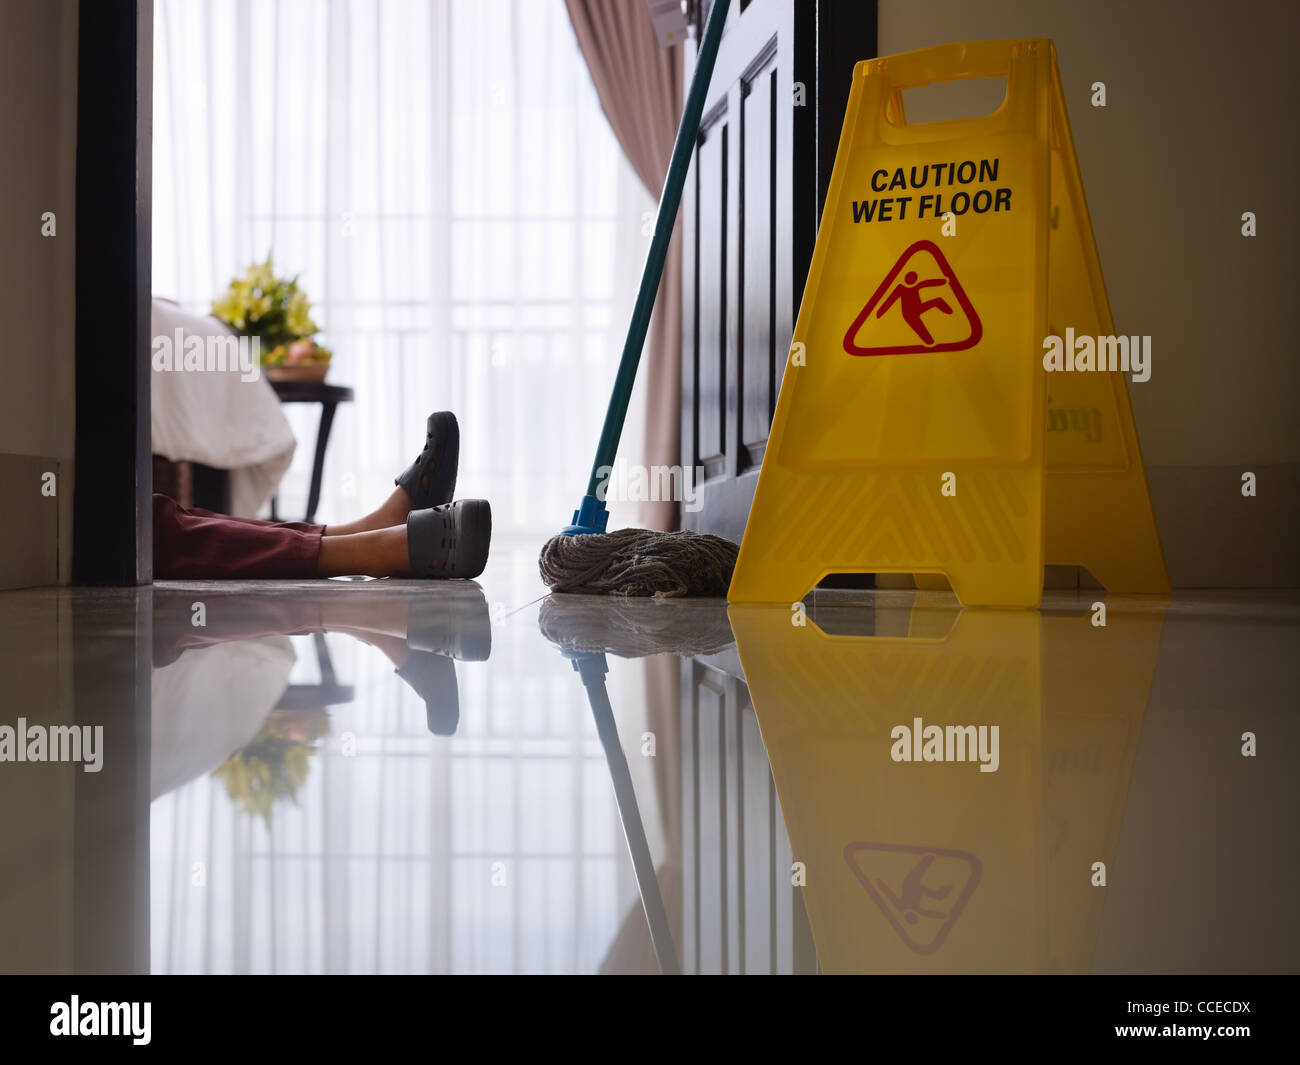 housemaid had accident at work while cleaning floor in hotel room. Side view, low angle - Stock Image